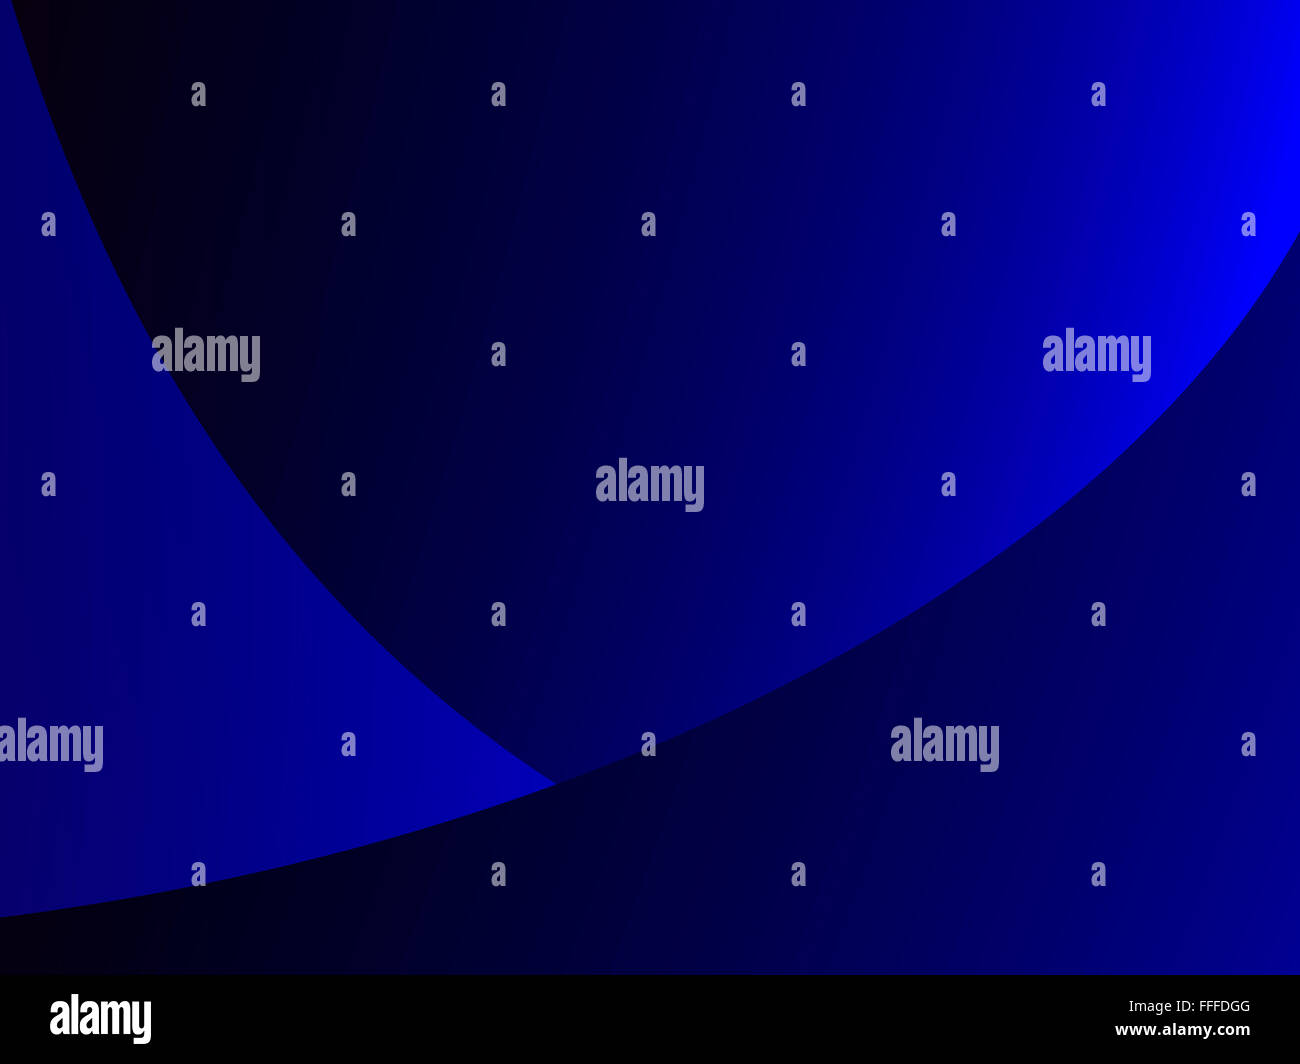 Abstract dynamic decorative gradient dynamic blue background - Stock Image